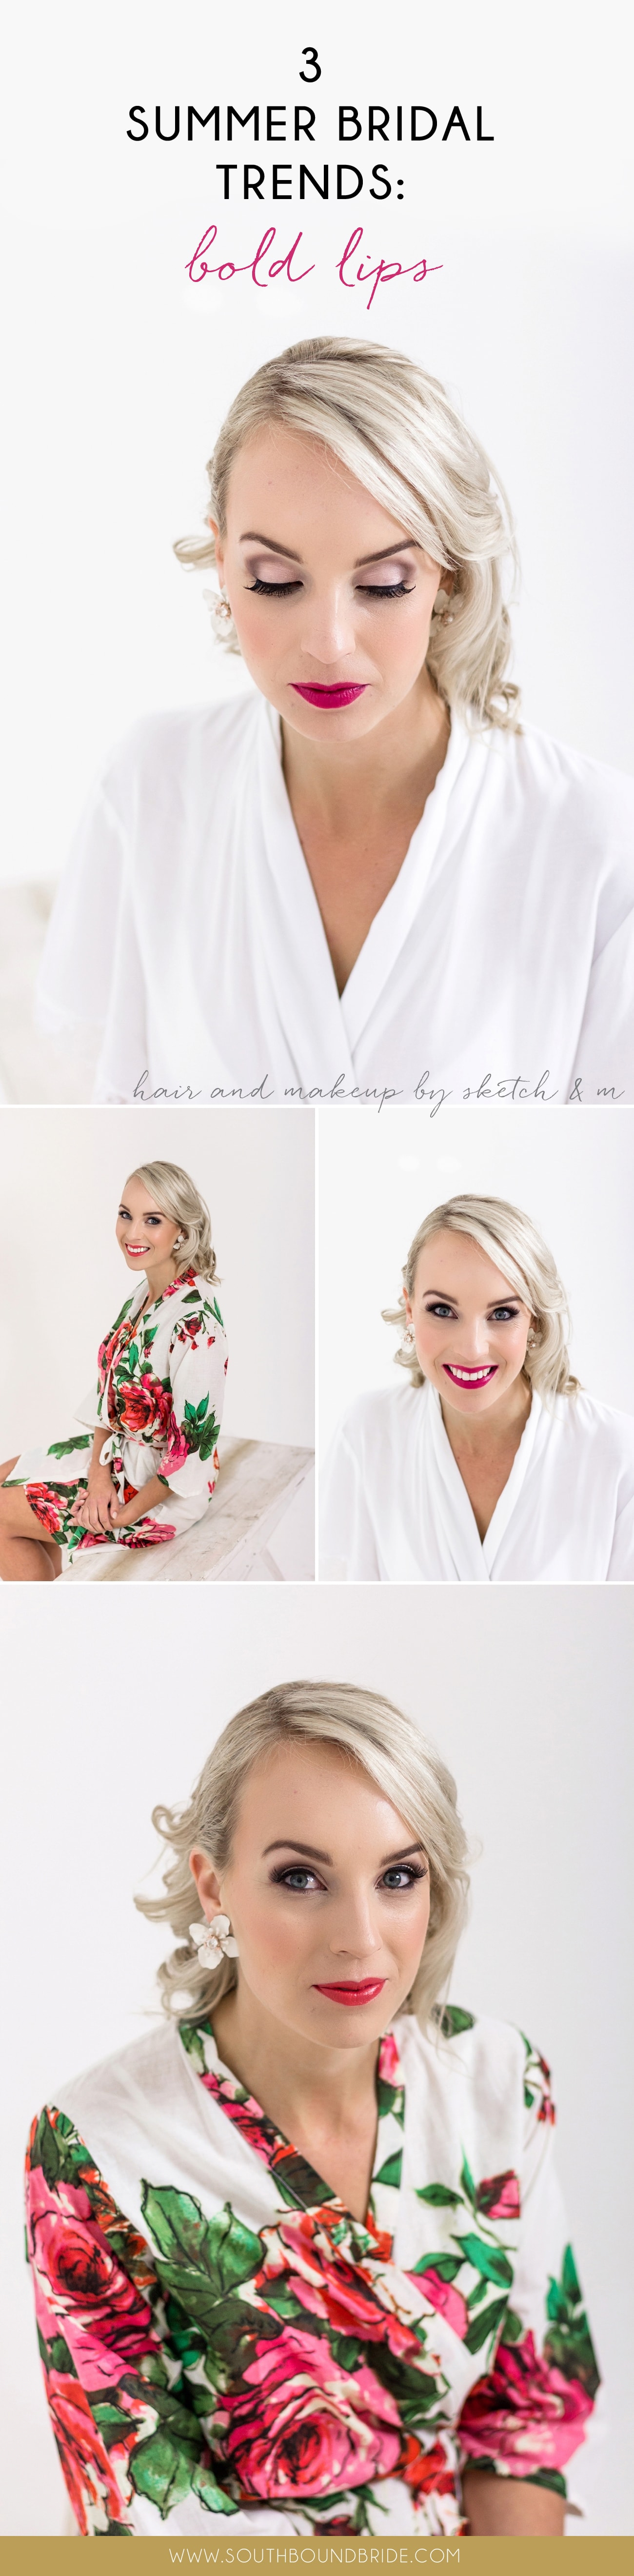 3 Gorgeous Summer Bridal Looks from the Catwalk with Sketch & M: Bold Lips | SouthBound Bride